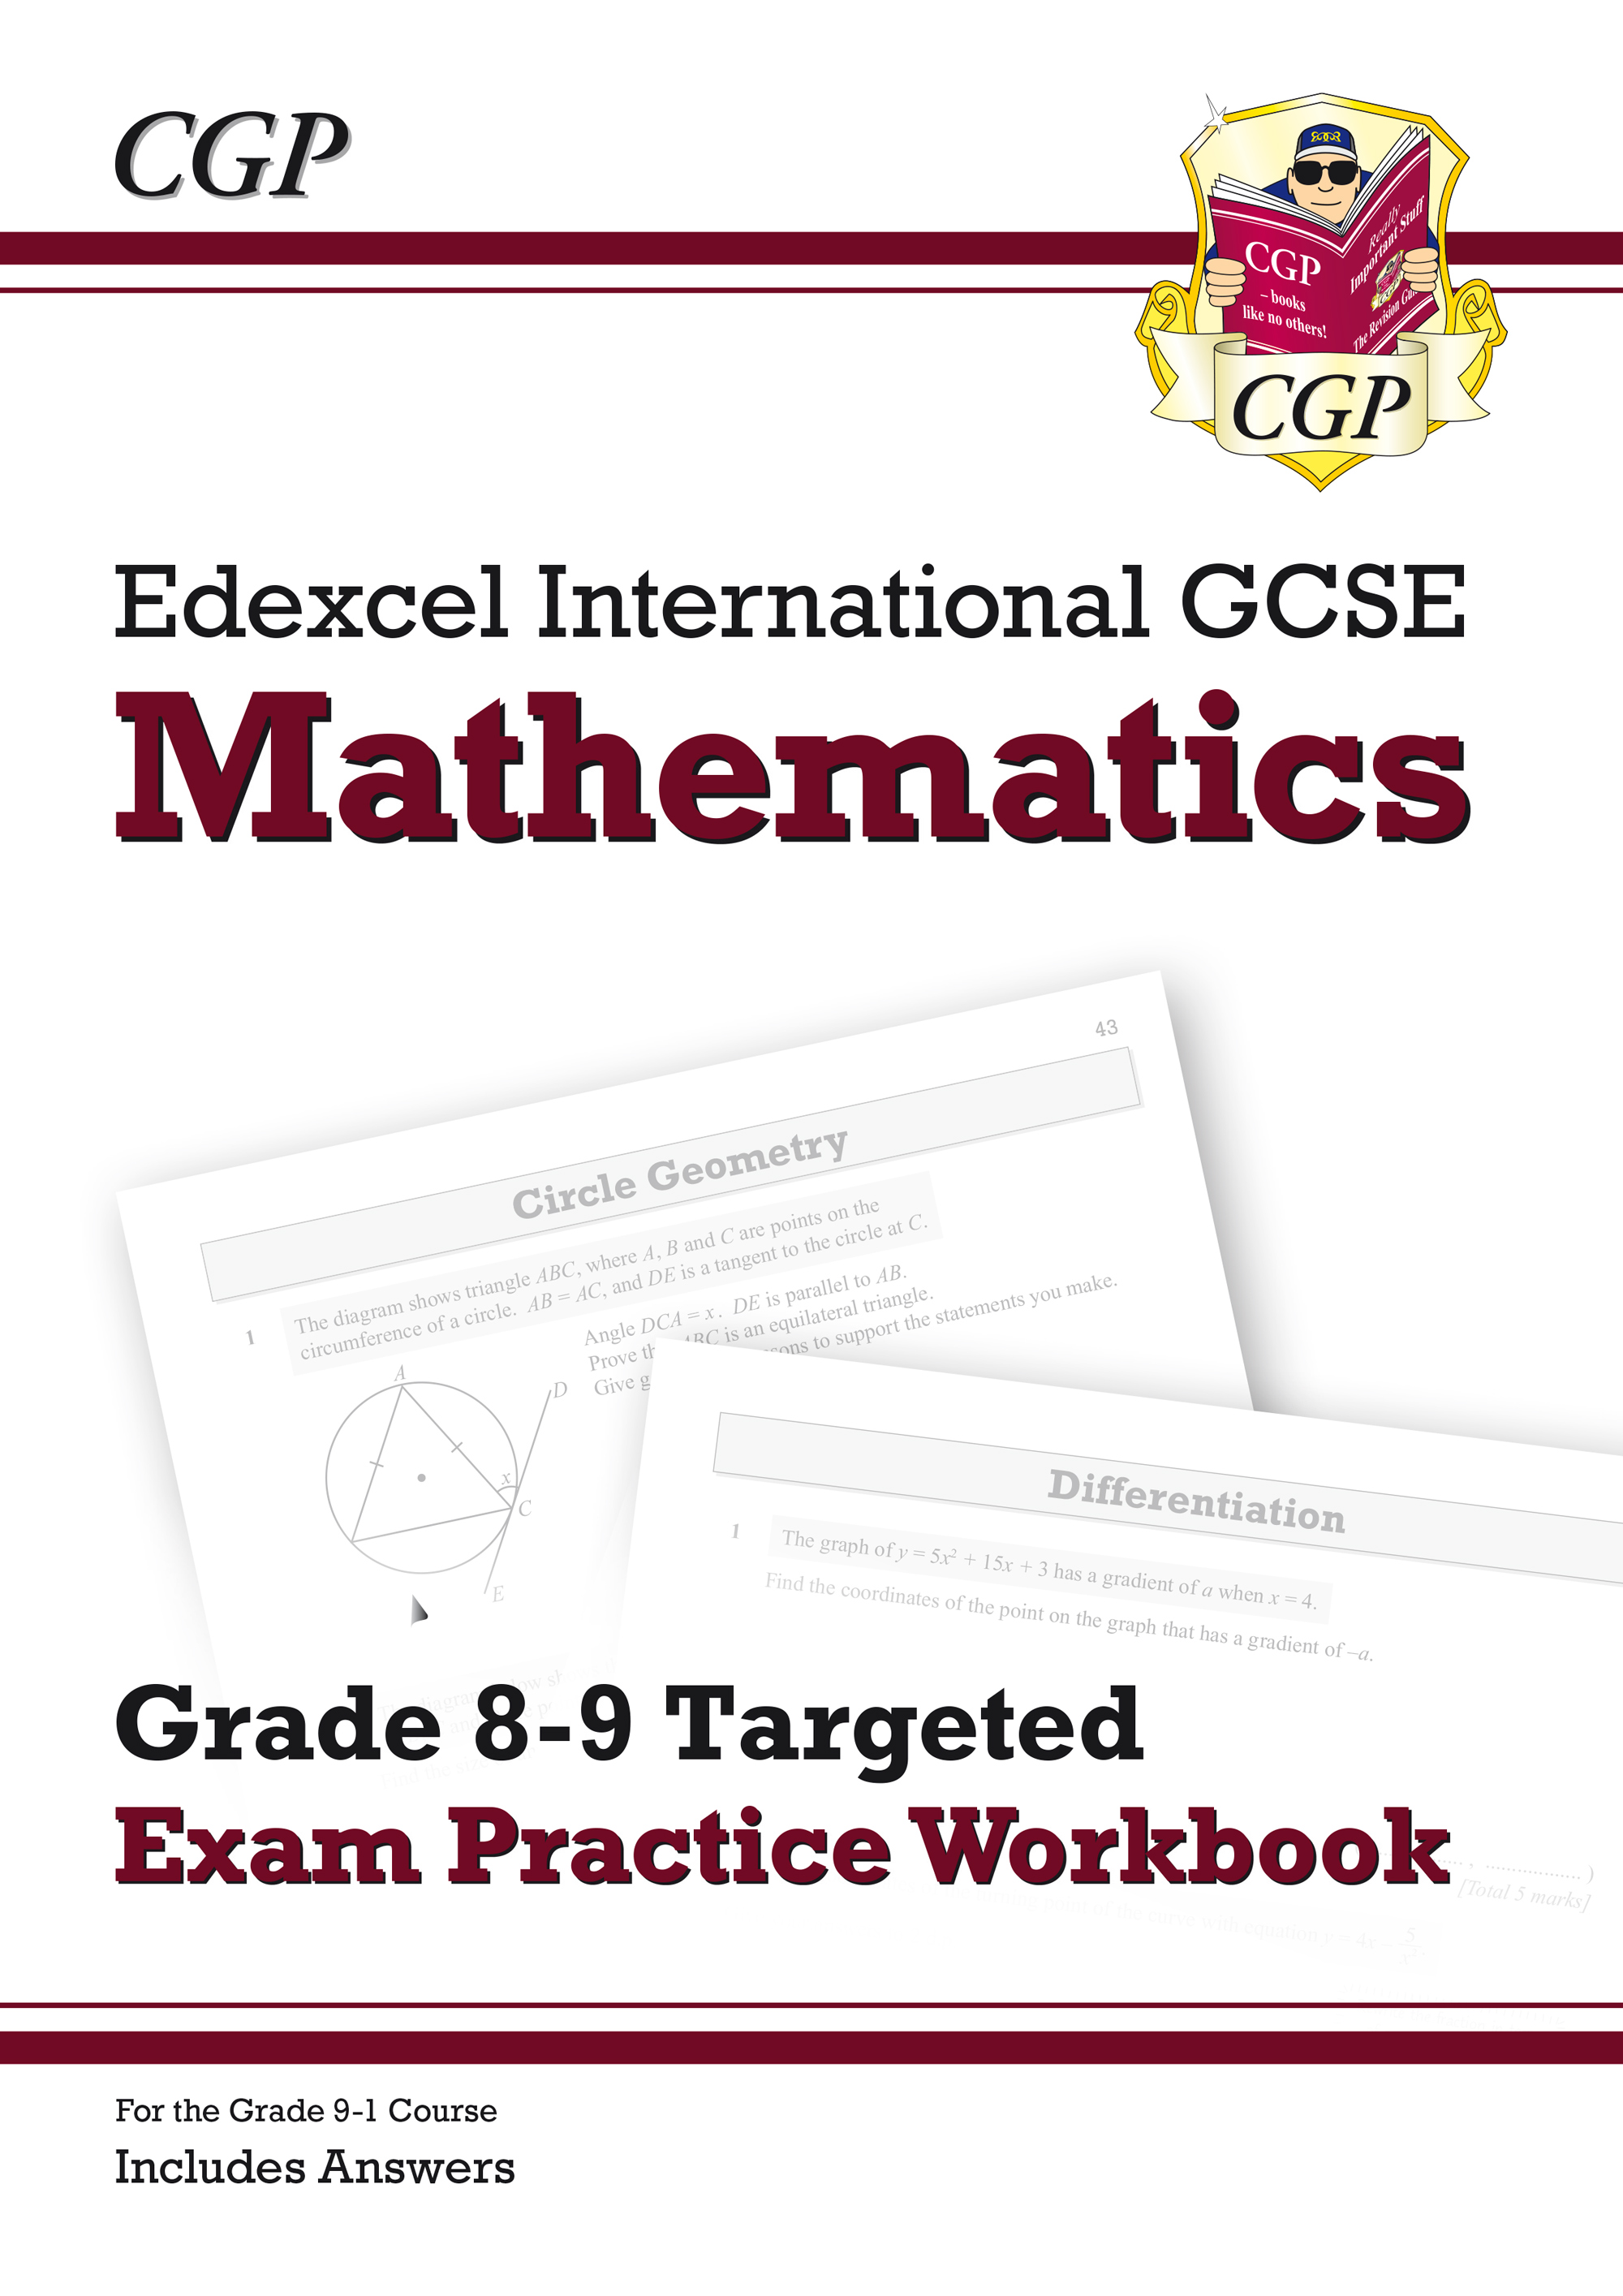 ME9QI41 - Edexcel International GCSE Maths Grade 8-9 Targeted Exam Practice Workbook (includes Answe